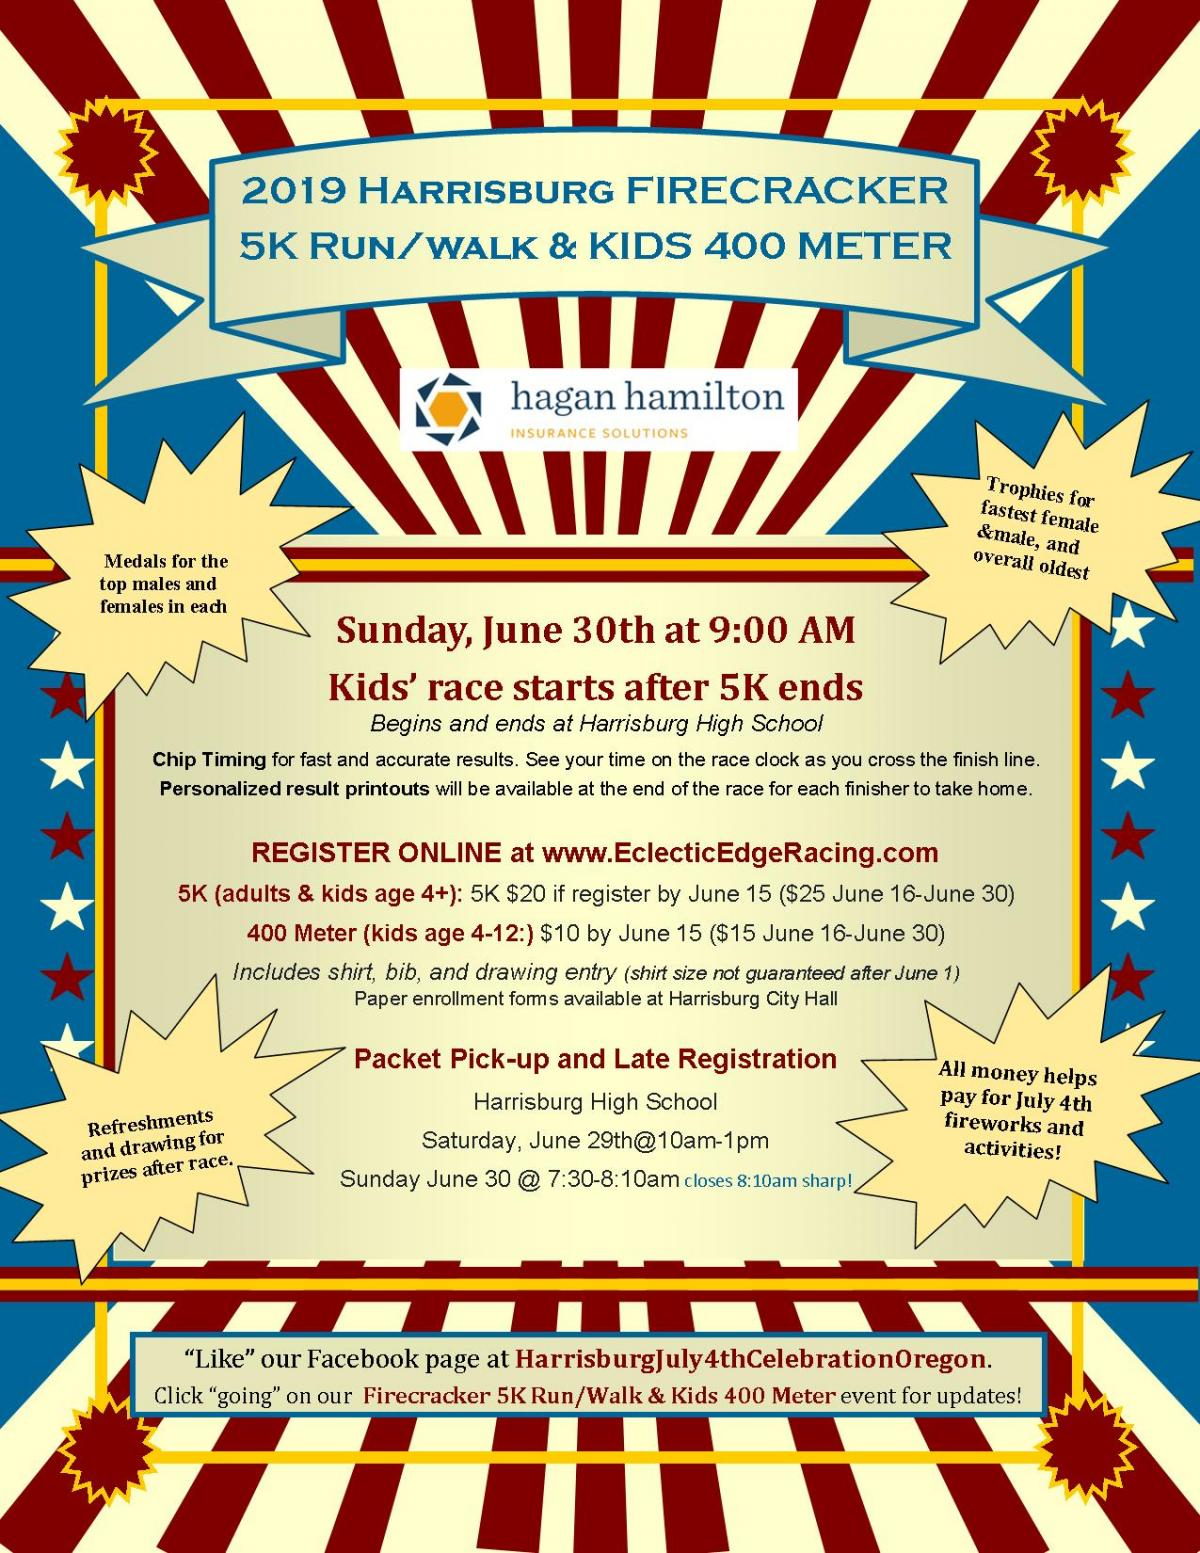 4th of July Firecracker 5K Run/Walk Event - Sponsored by